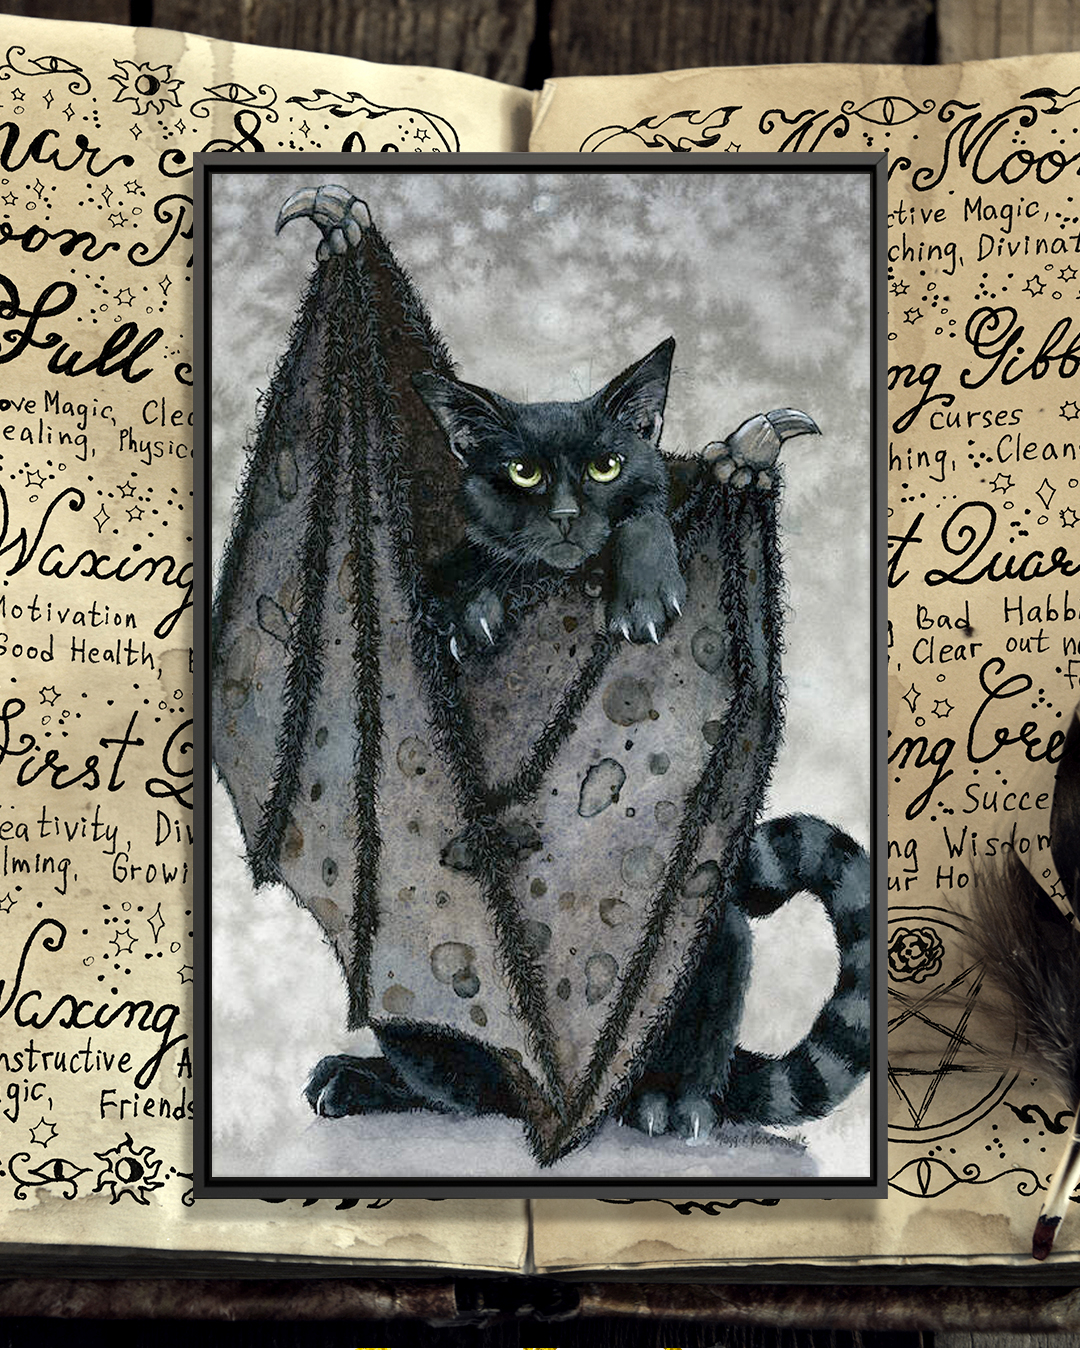 """Furling"" by Maggie Vandewalle shows a black cat with black bat wings and green eyes."